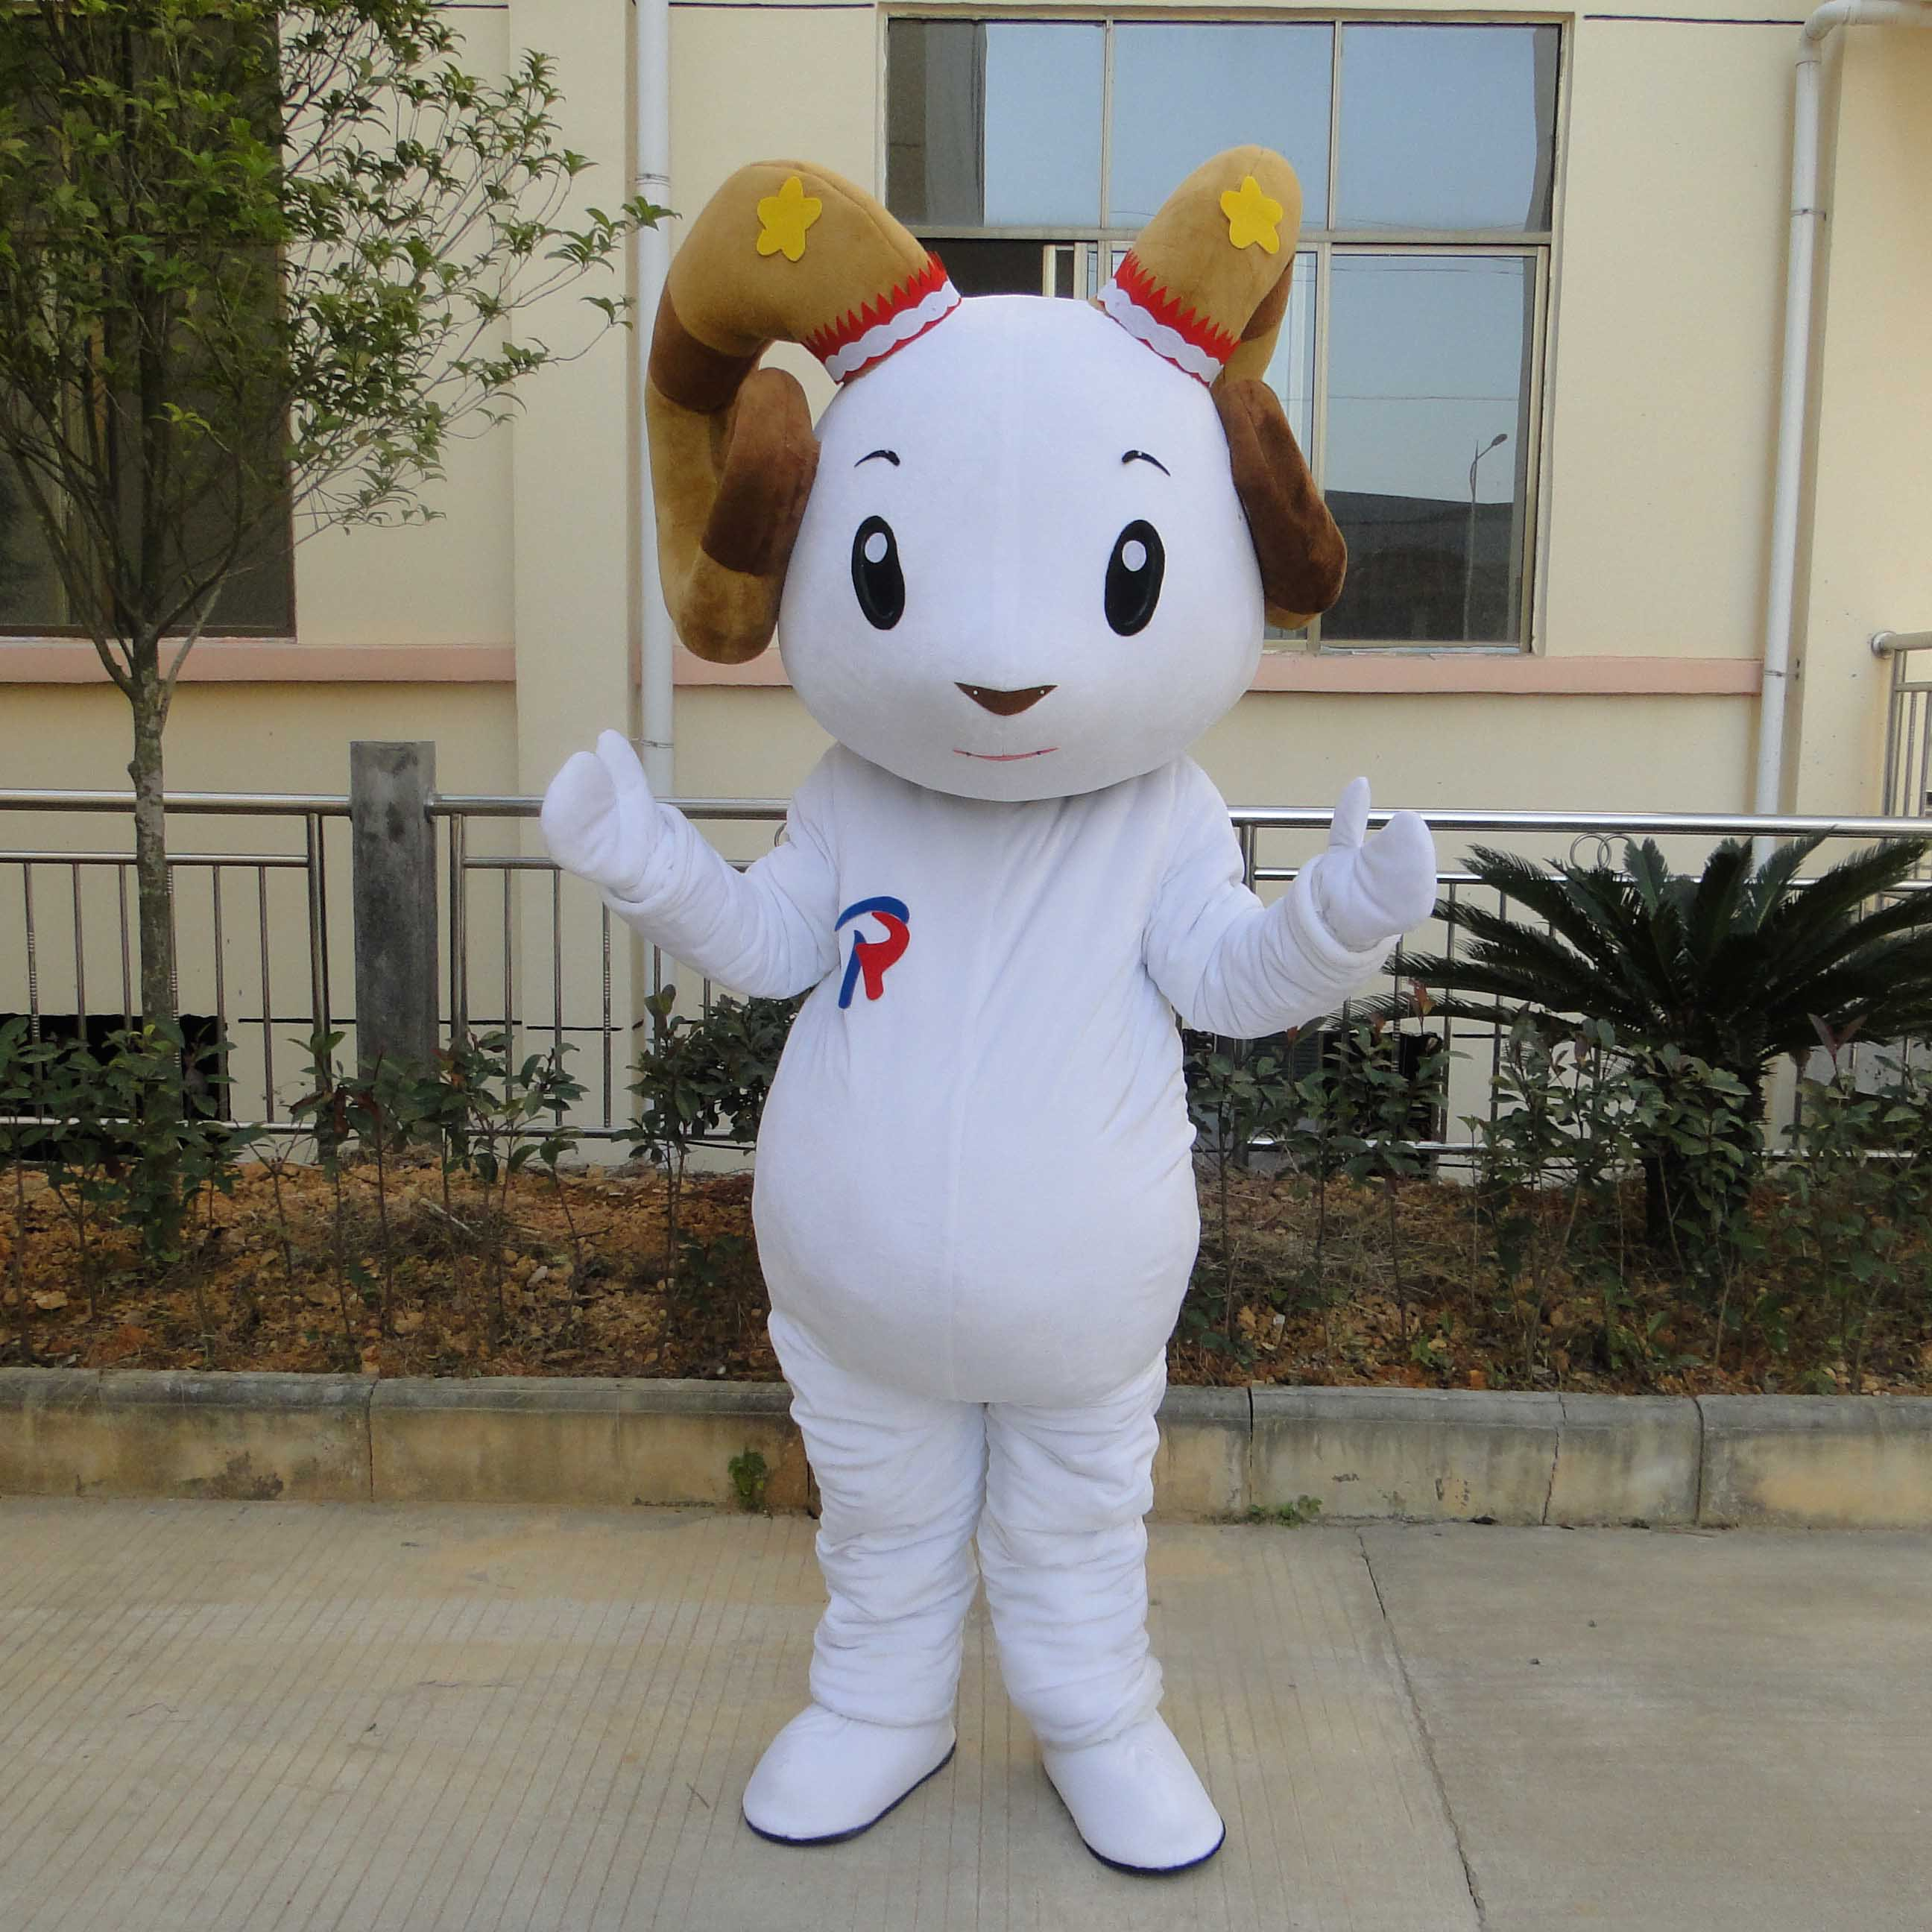 Sheep Sheep Mascot Cartoon Doll Clothing Doll Clothing Cartoon Show To Promote Its Props Walking Dolls For Adults Mascot Costume